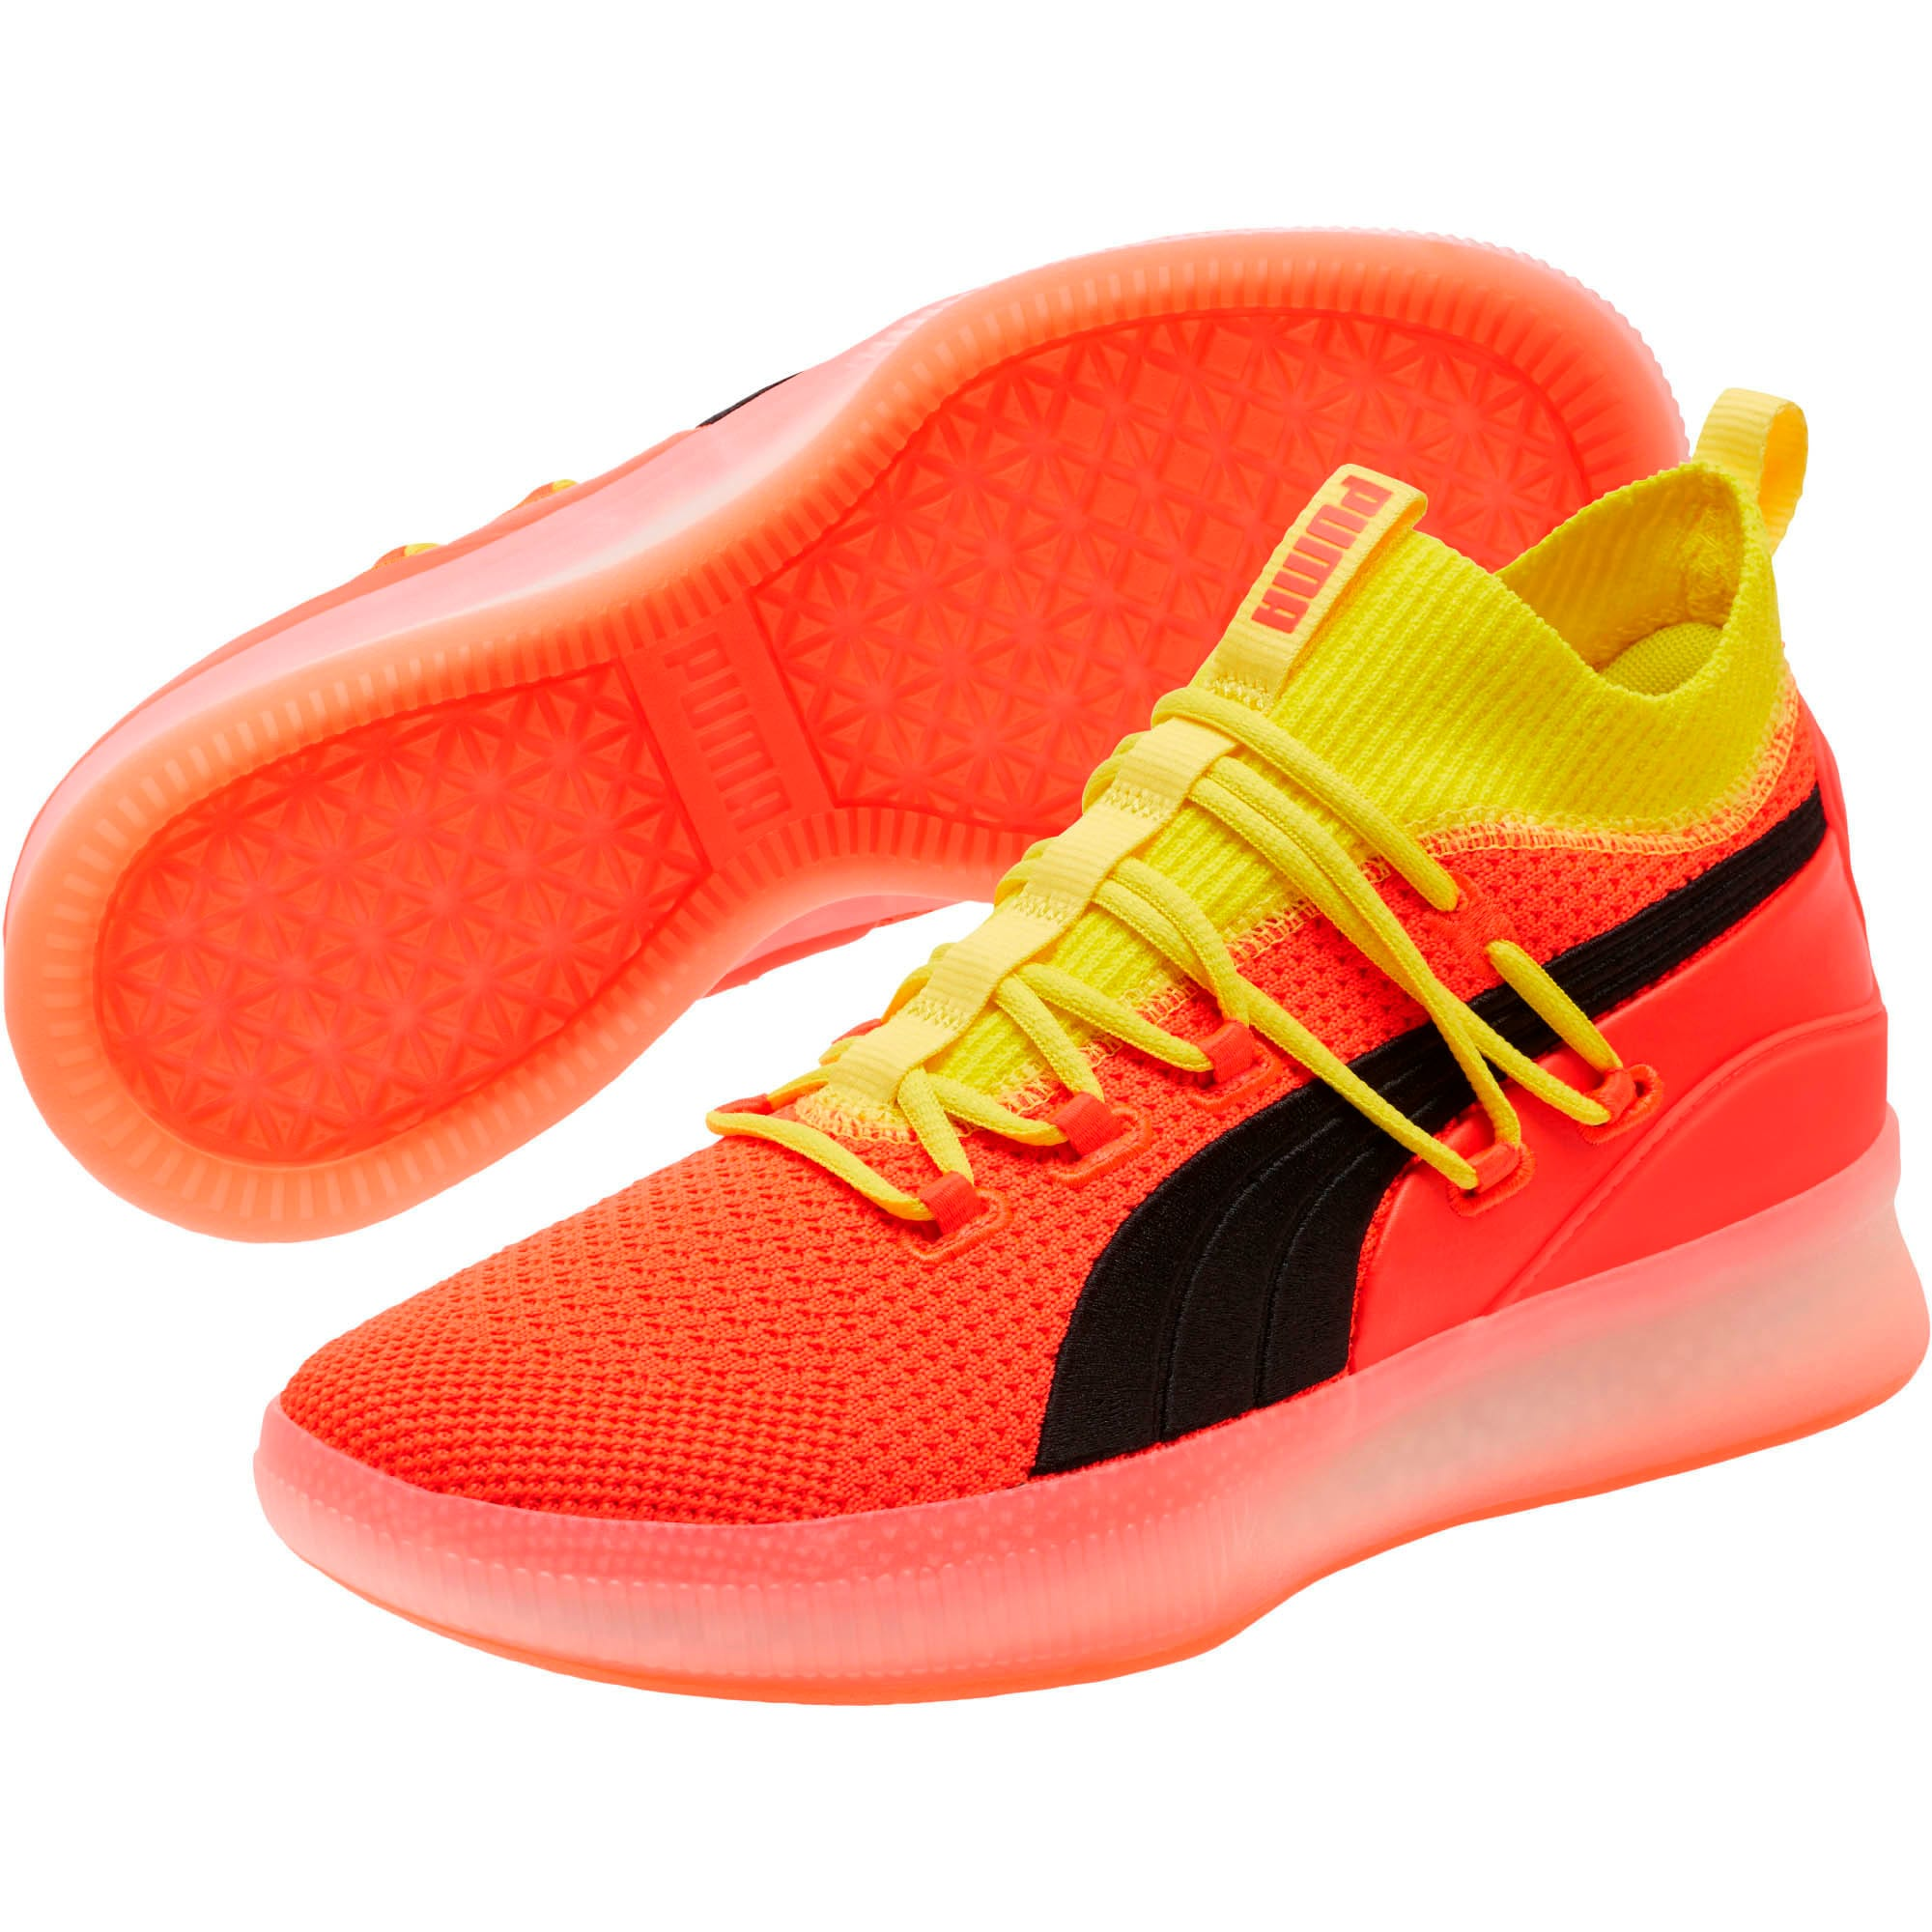 outlet store 7b15b 1dbf9 Clyde Court Basketball Shoes JR